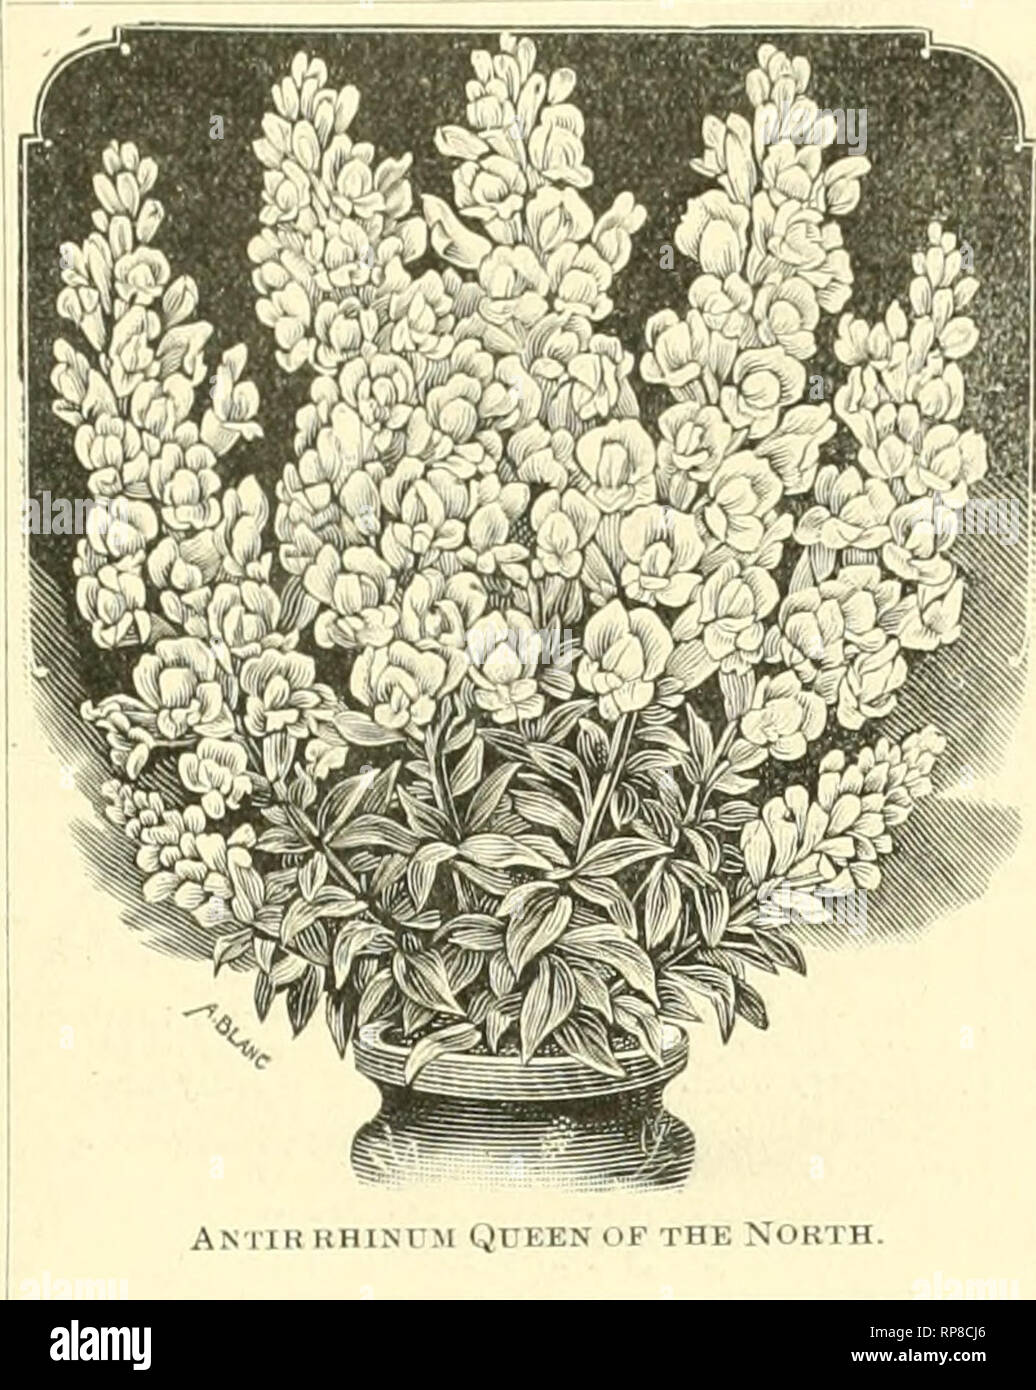 """. The American florist : a weekly journal for the trade. Floriculture; Florists. igoo. The American Florist. 1059 i s»? FLORISTS' FLOWER SEEDS Antirrhinum Queen of the North Snow «like, ail cxculli'iil cut tlowcr. Hlooins summer and winter. Trade pki. iOi-.: iiz. :h(ic. Aqultegia Coerulea — V'.Qi- p.it plalil- 'l'i:ulr pkt.. HH- Aquilegia Coerulea Hybrida The seed of these new hybrids liiis lieen supplied to us hy Mr. L Burbank, who describes ihem as """"marvelously improved in si/e and colors—by far the best seed ever olTerid ' Trade pkt..-Jnc. Asparagus Plumosus Nanus Mill seeds, *r .till; - Stock Image"""